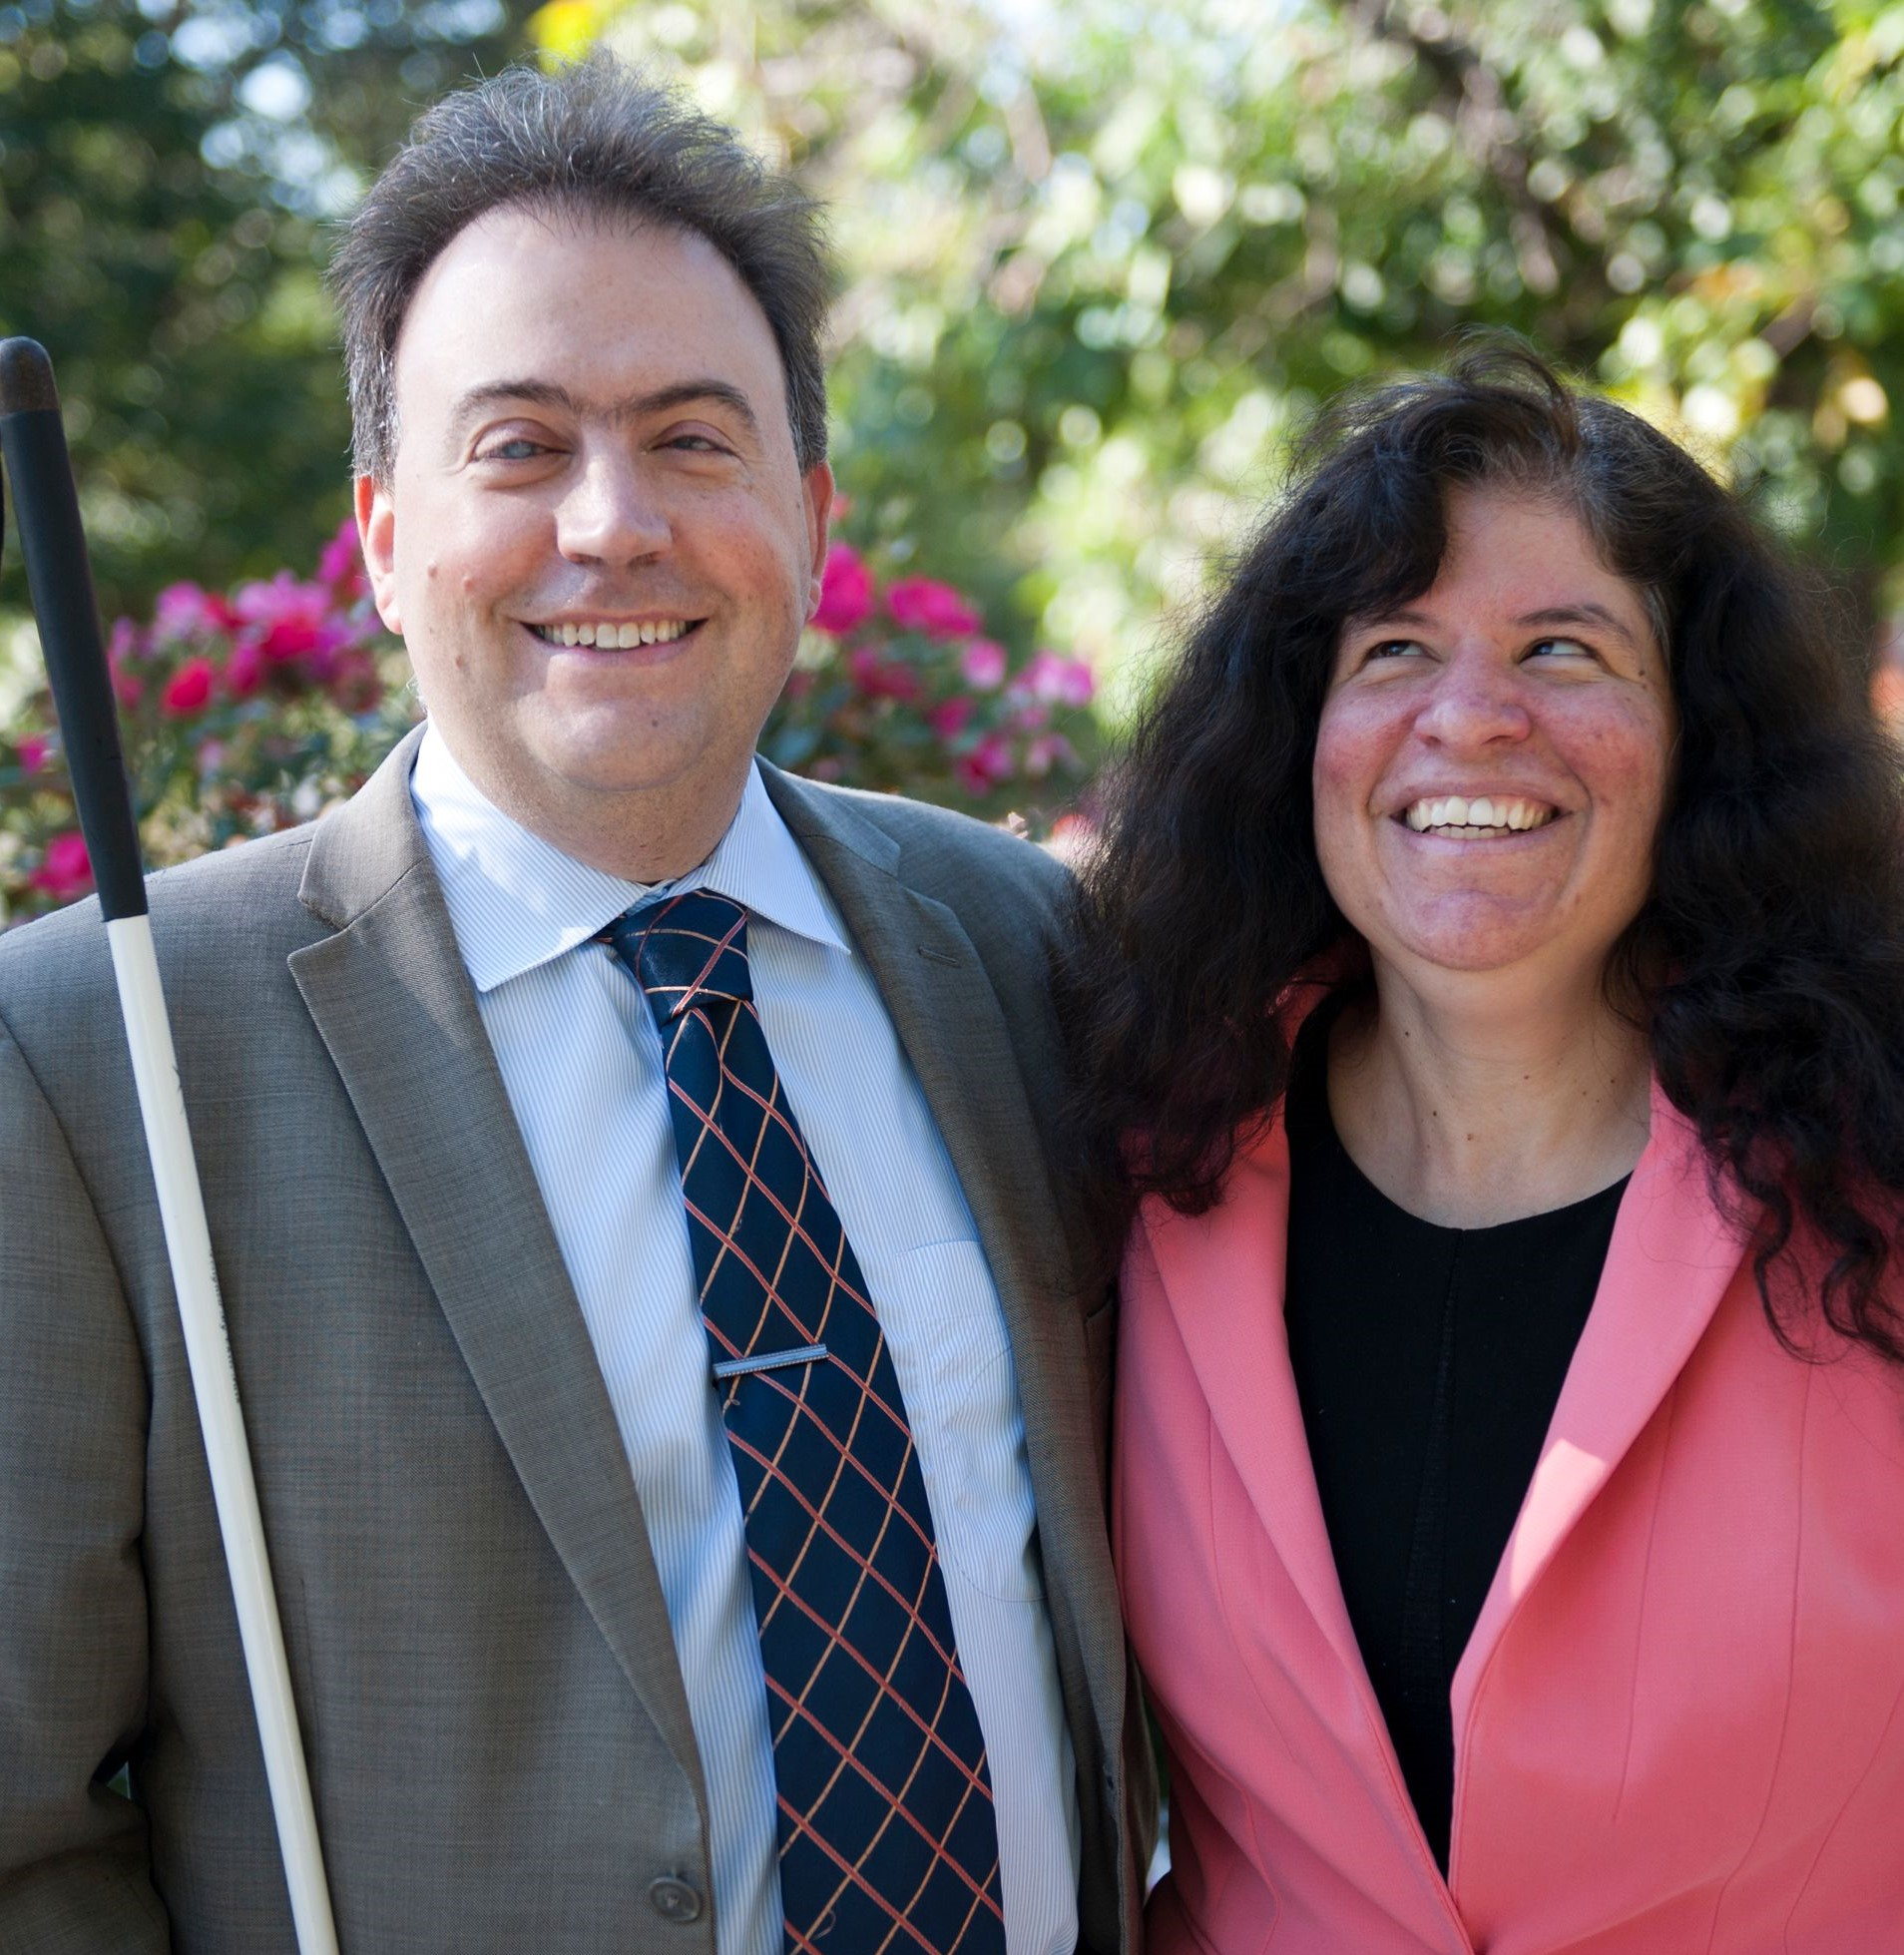 NFB President Mark A. Riccobono and First Lady Melissa Riccobono stand together smiling in the park.